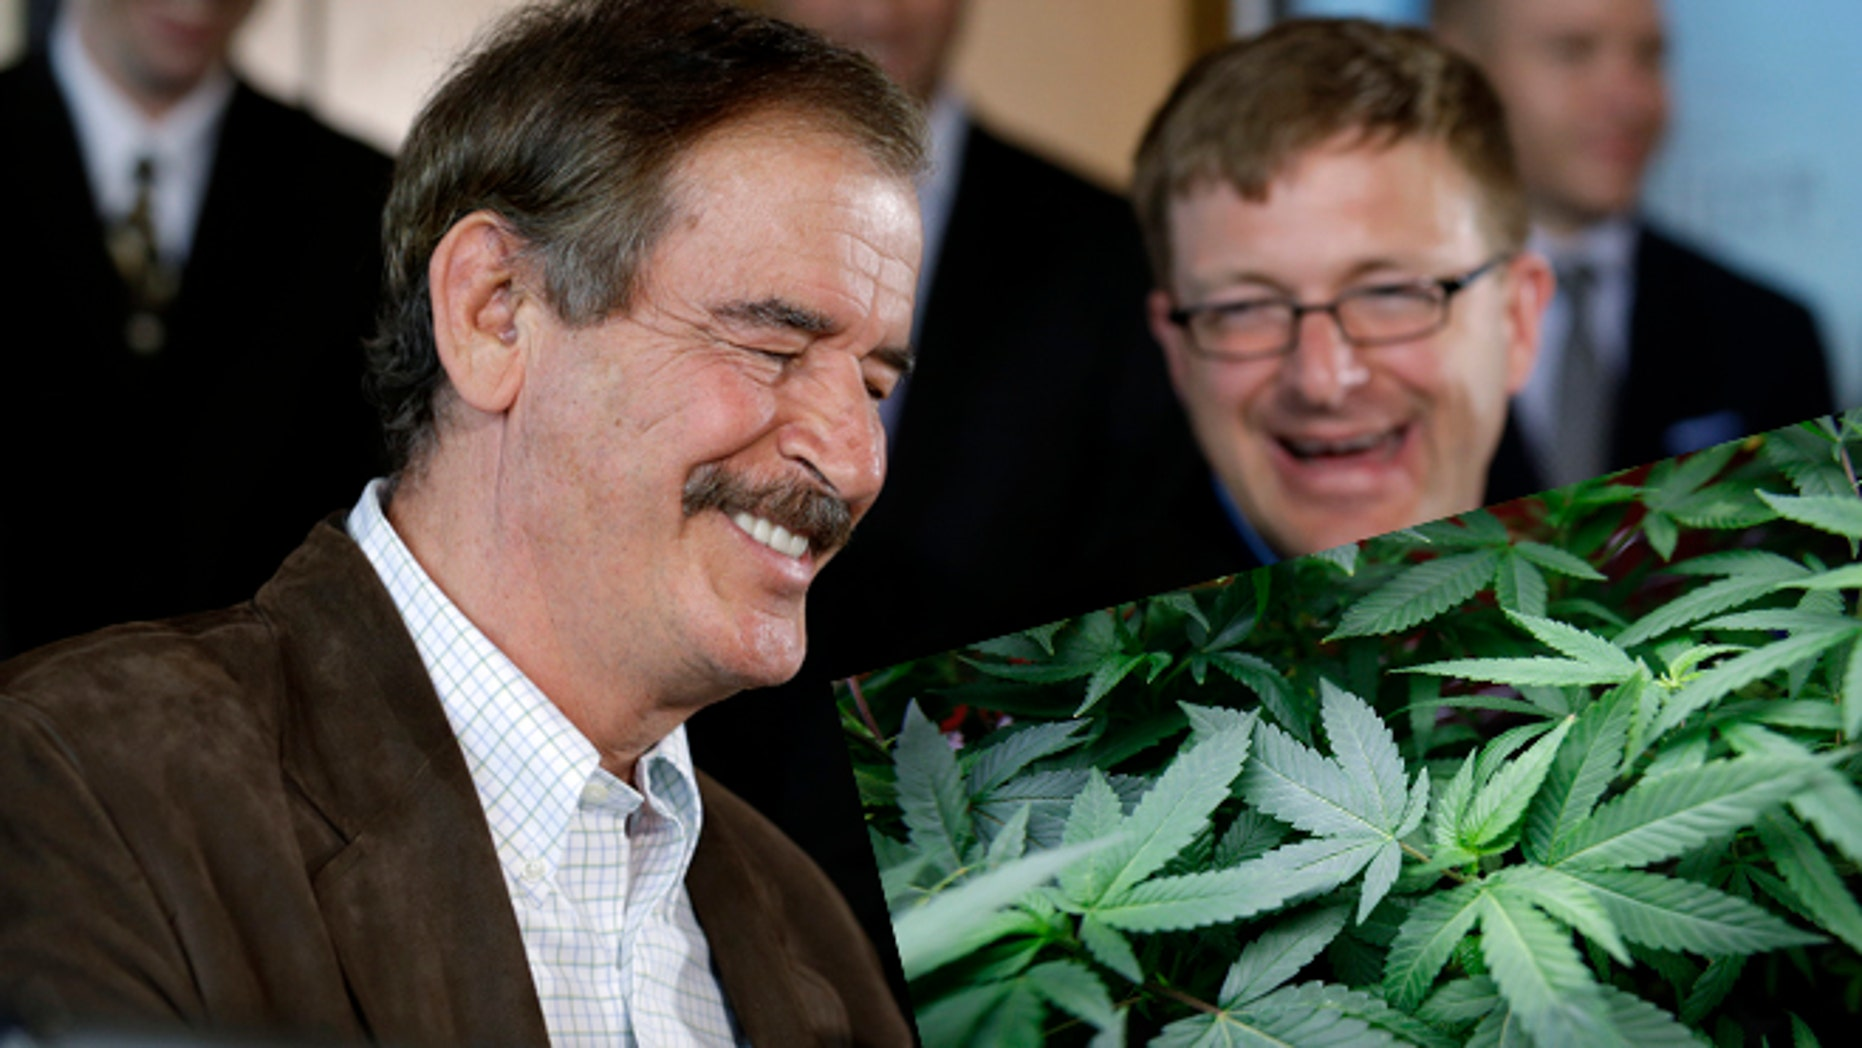 Former Mexican President Vicente Fox, left, speaks as Jamen Shively, CEO of Diego Pellicer, looks on during a news conference Thursday, May 30, 2013, in Seattle. (AP Photo/Elaine Thompson)